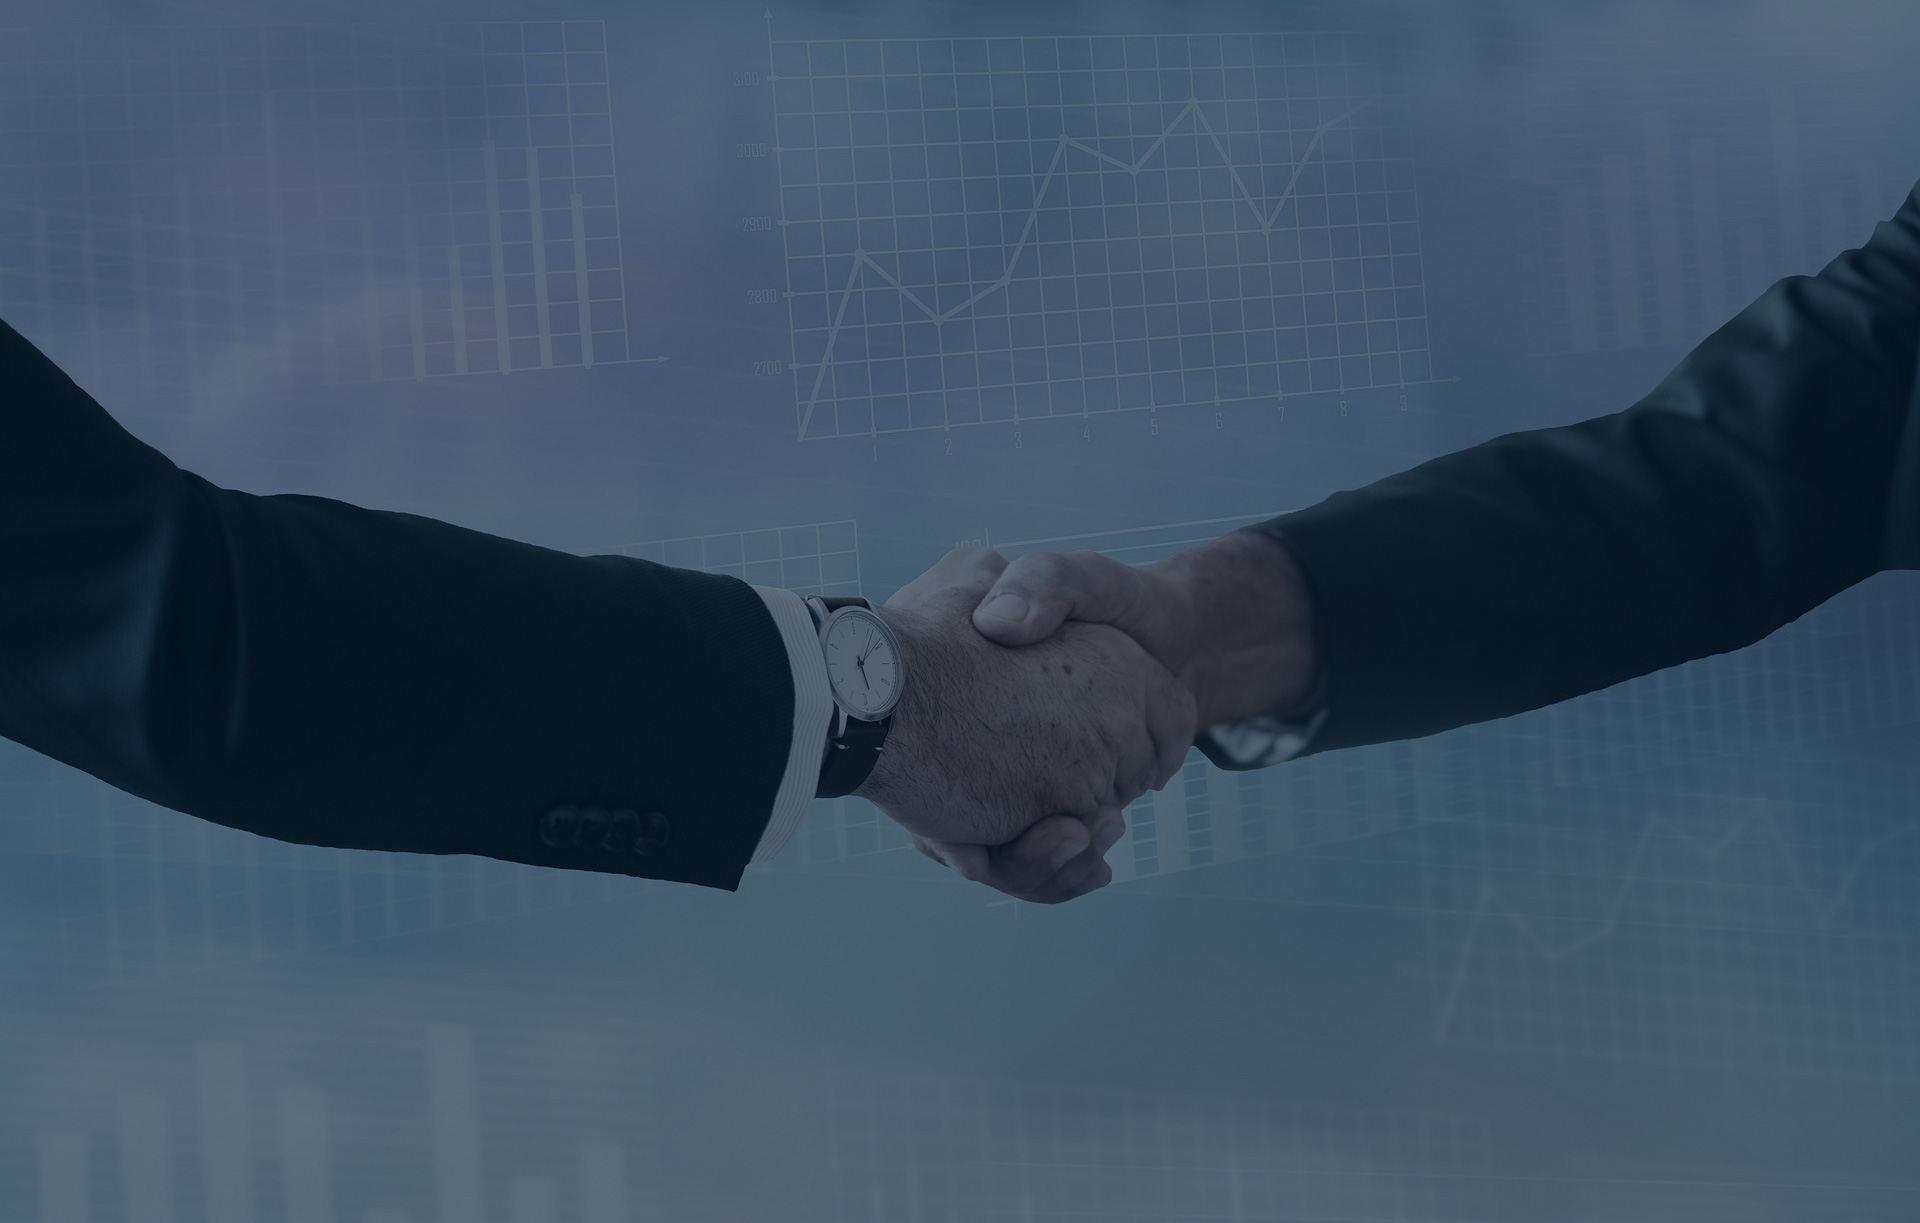 GBT Enters Into a Sales Agreement with Med Tech/Med Care Associates